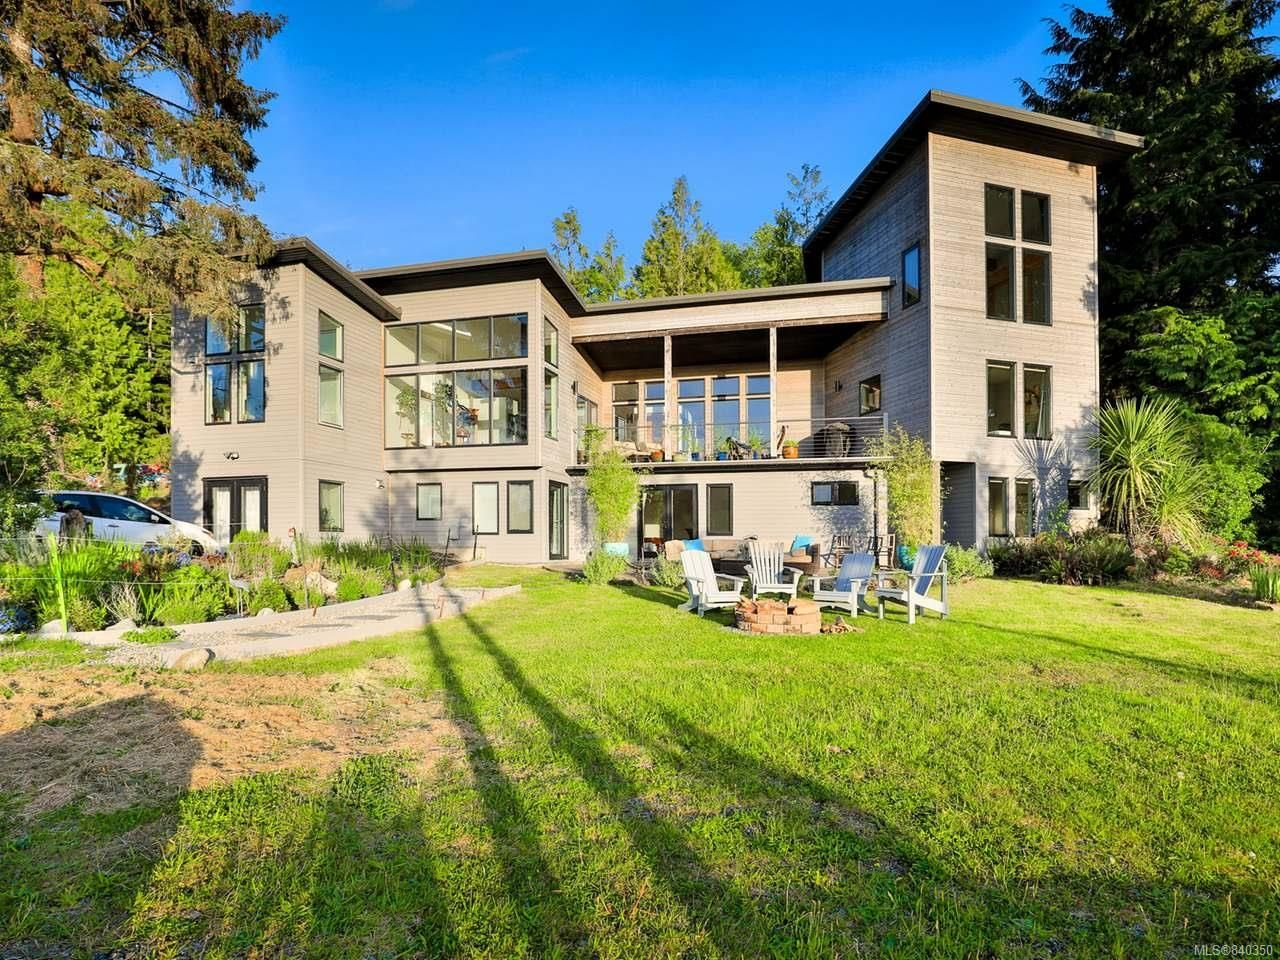 Photo 53: Photos: 1068 Helen Rd in UCLUELET: PA Ucluelet House for sale (Port Alberni)  : MLS®# 840350